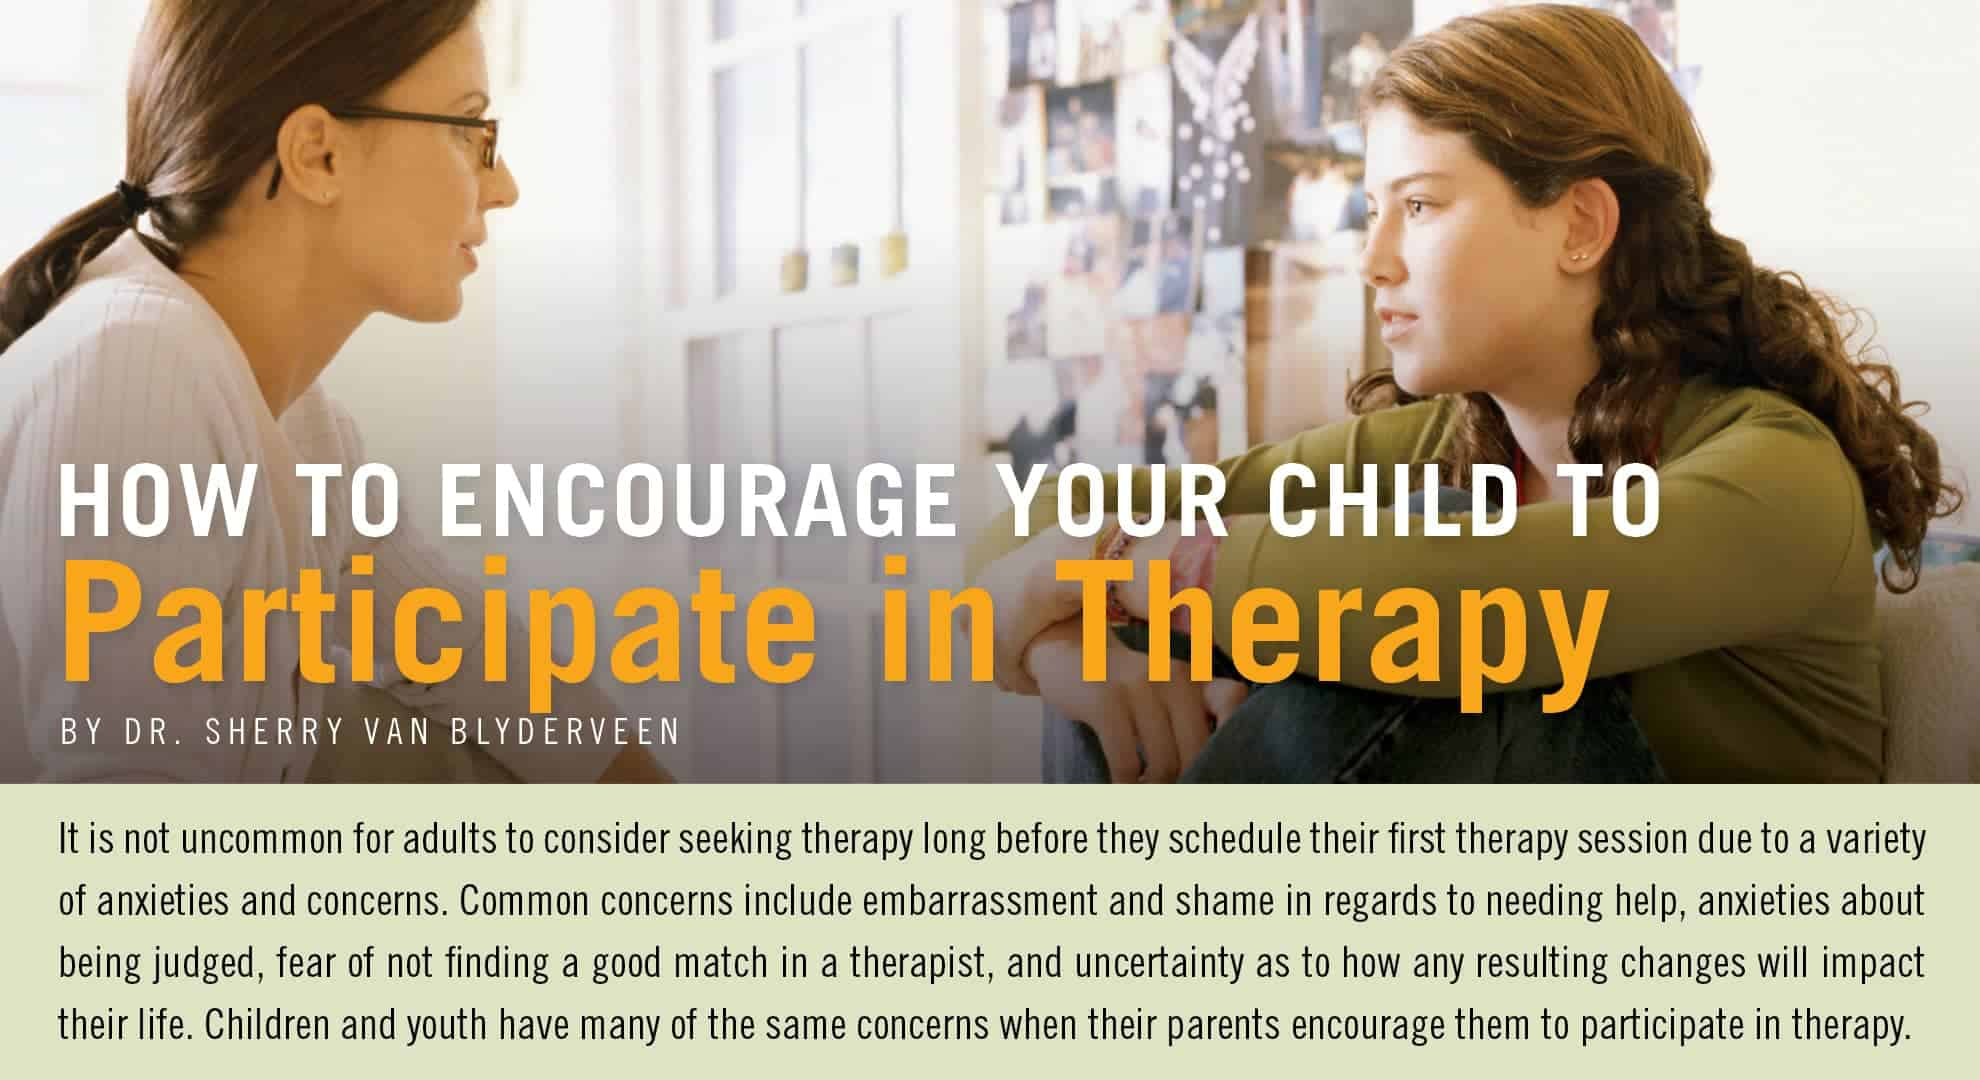 How to Encourage Your Child to Participate in Therapy